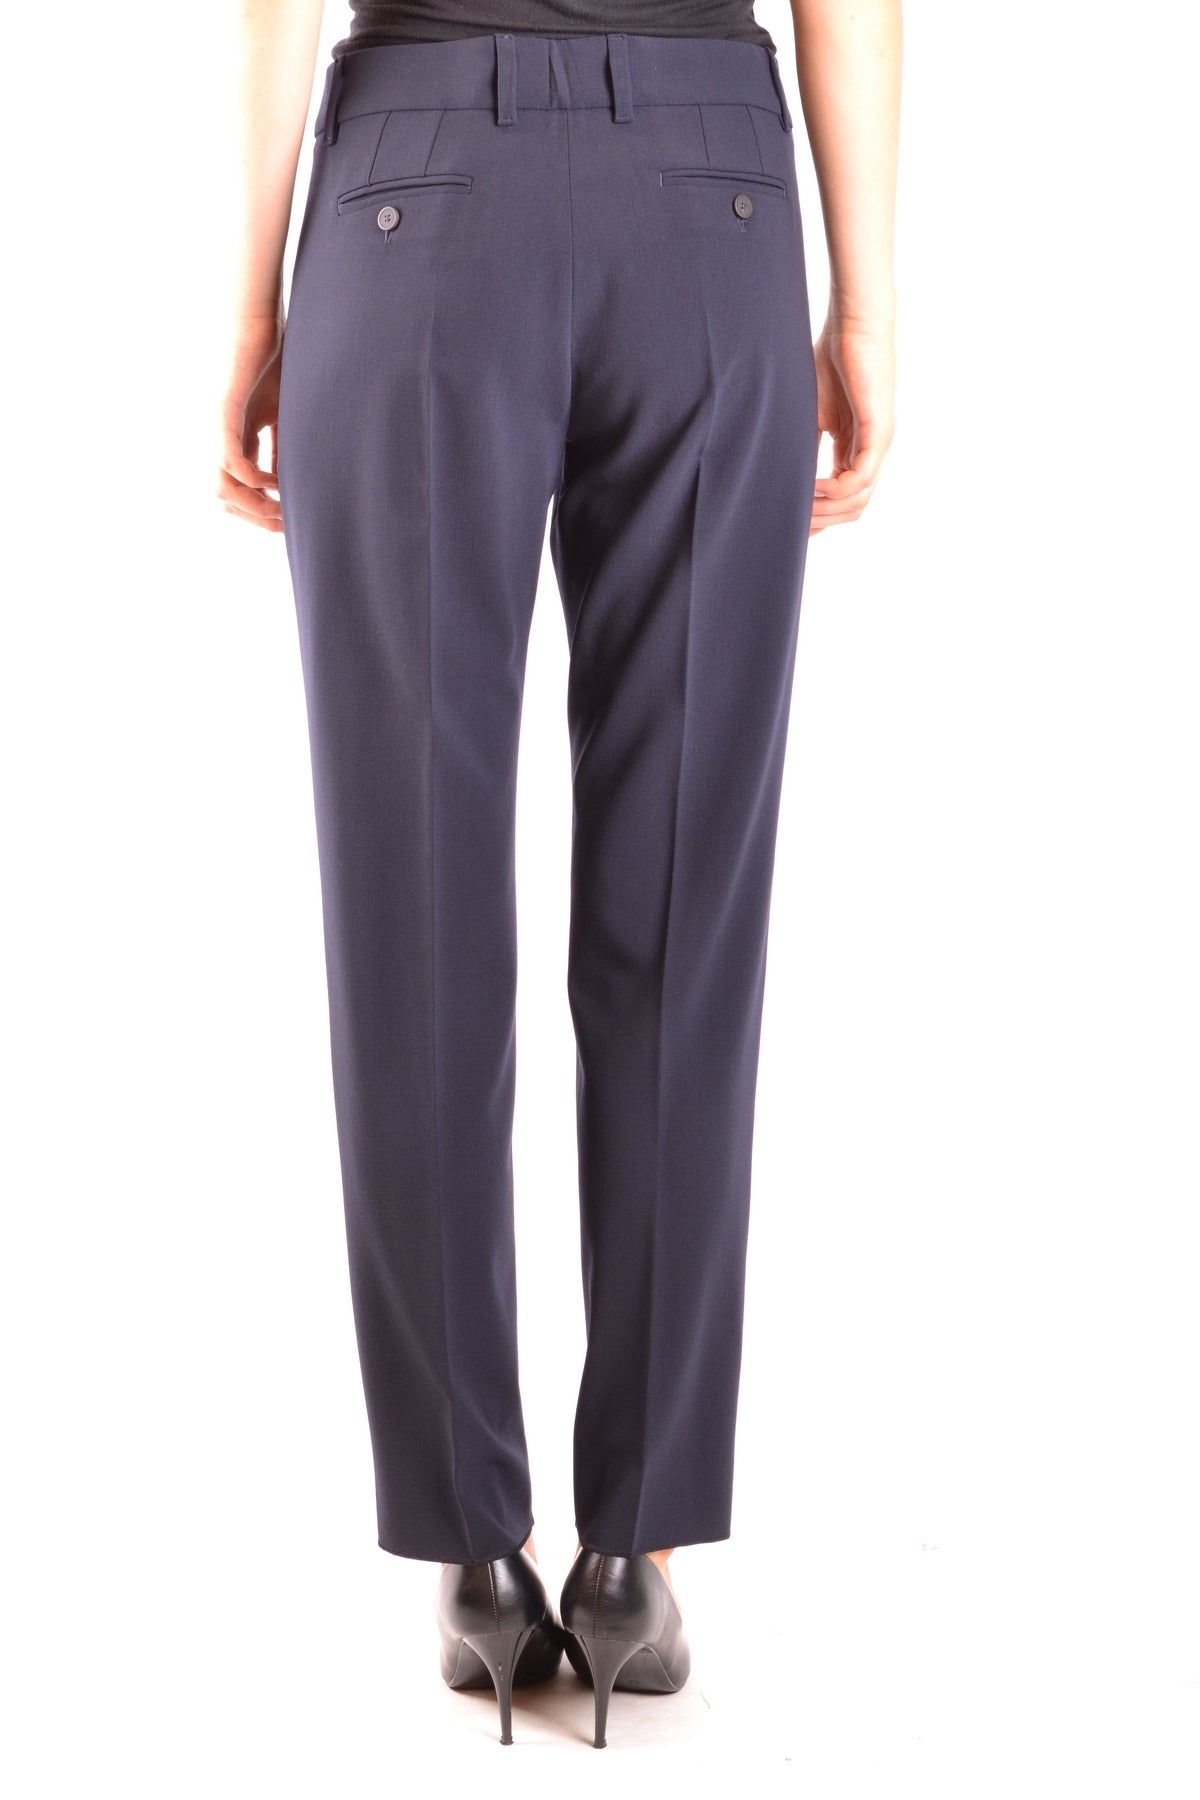 Trousers Armani Collezioni-Trousers - WOMAN-Product Details Season: Fall / WinterTerms: New With LabelMain Color: BlueGender: WomanMade In: RomaniaManufacturer Part Number: Vmp08T Vm008Size: ItYear: 2018Clothing Type: TrousersComposition: Elastane 4%, Wool 96%-Keyomi-Sook